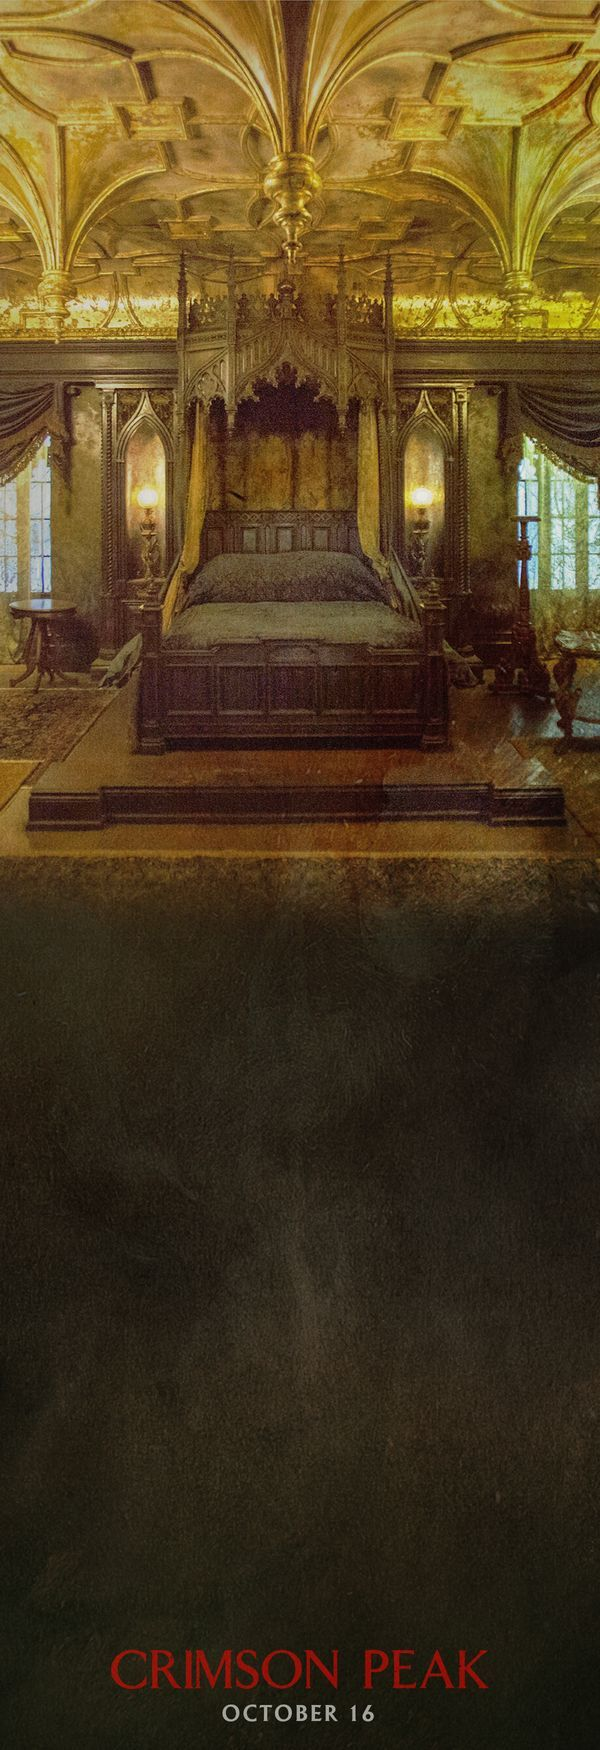 the master bedroom of her new home | Crimson Peak in theaters 10.15.16